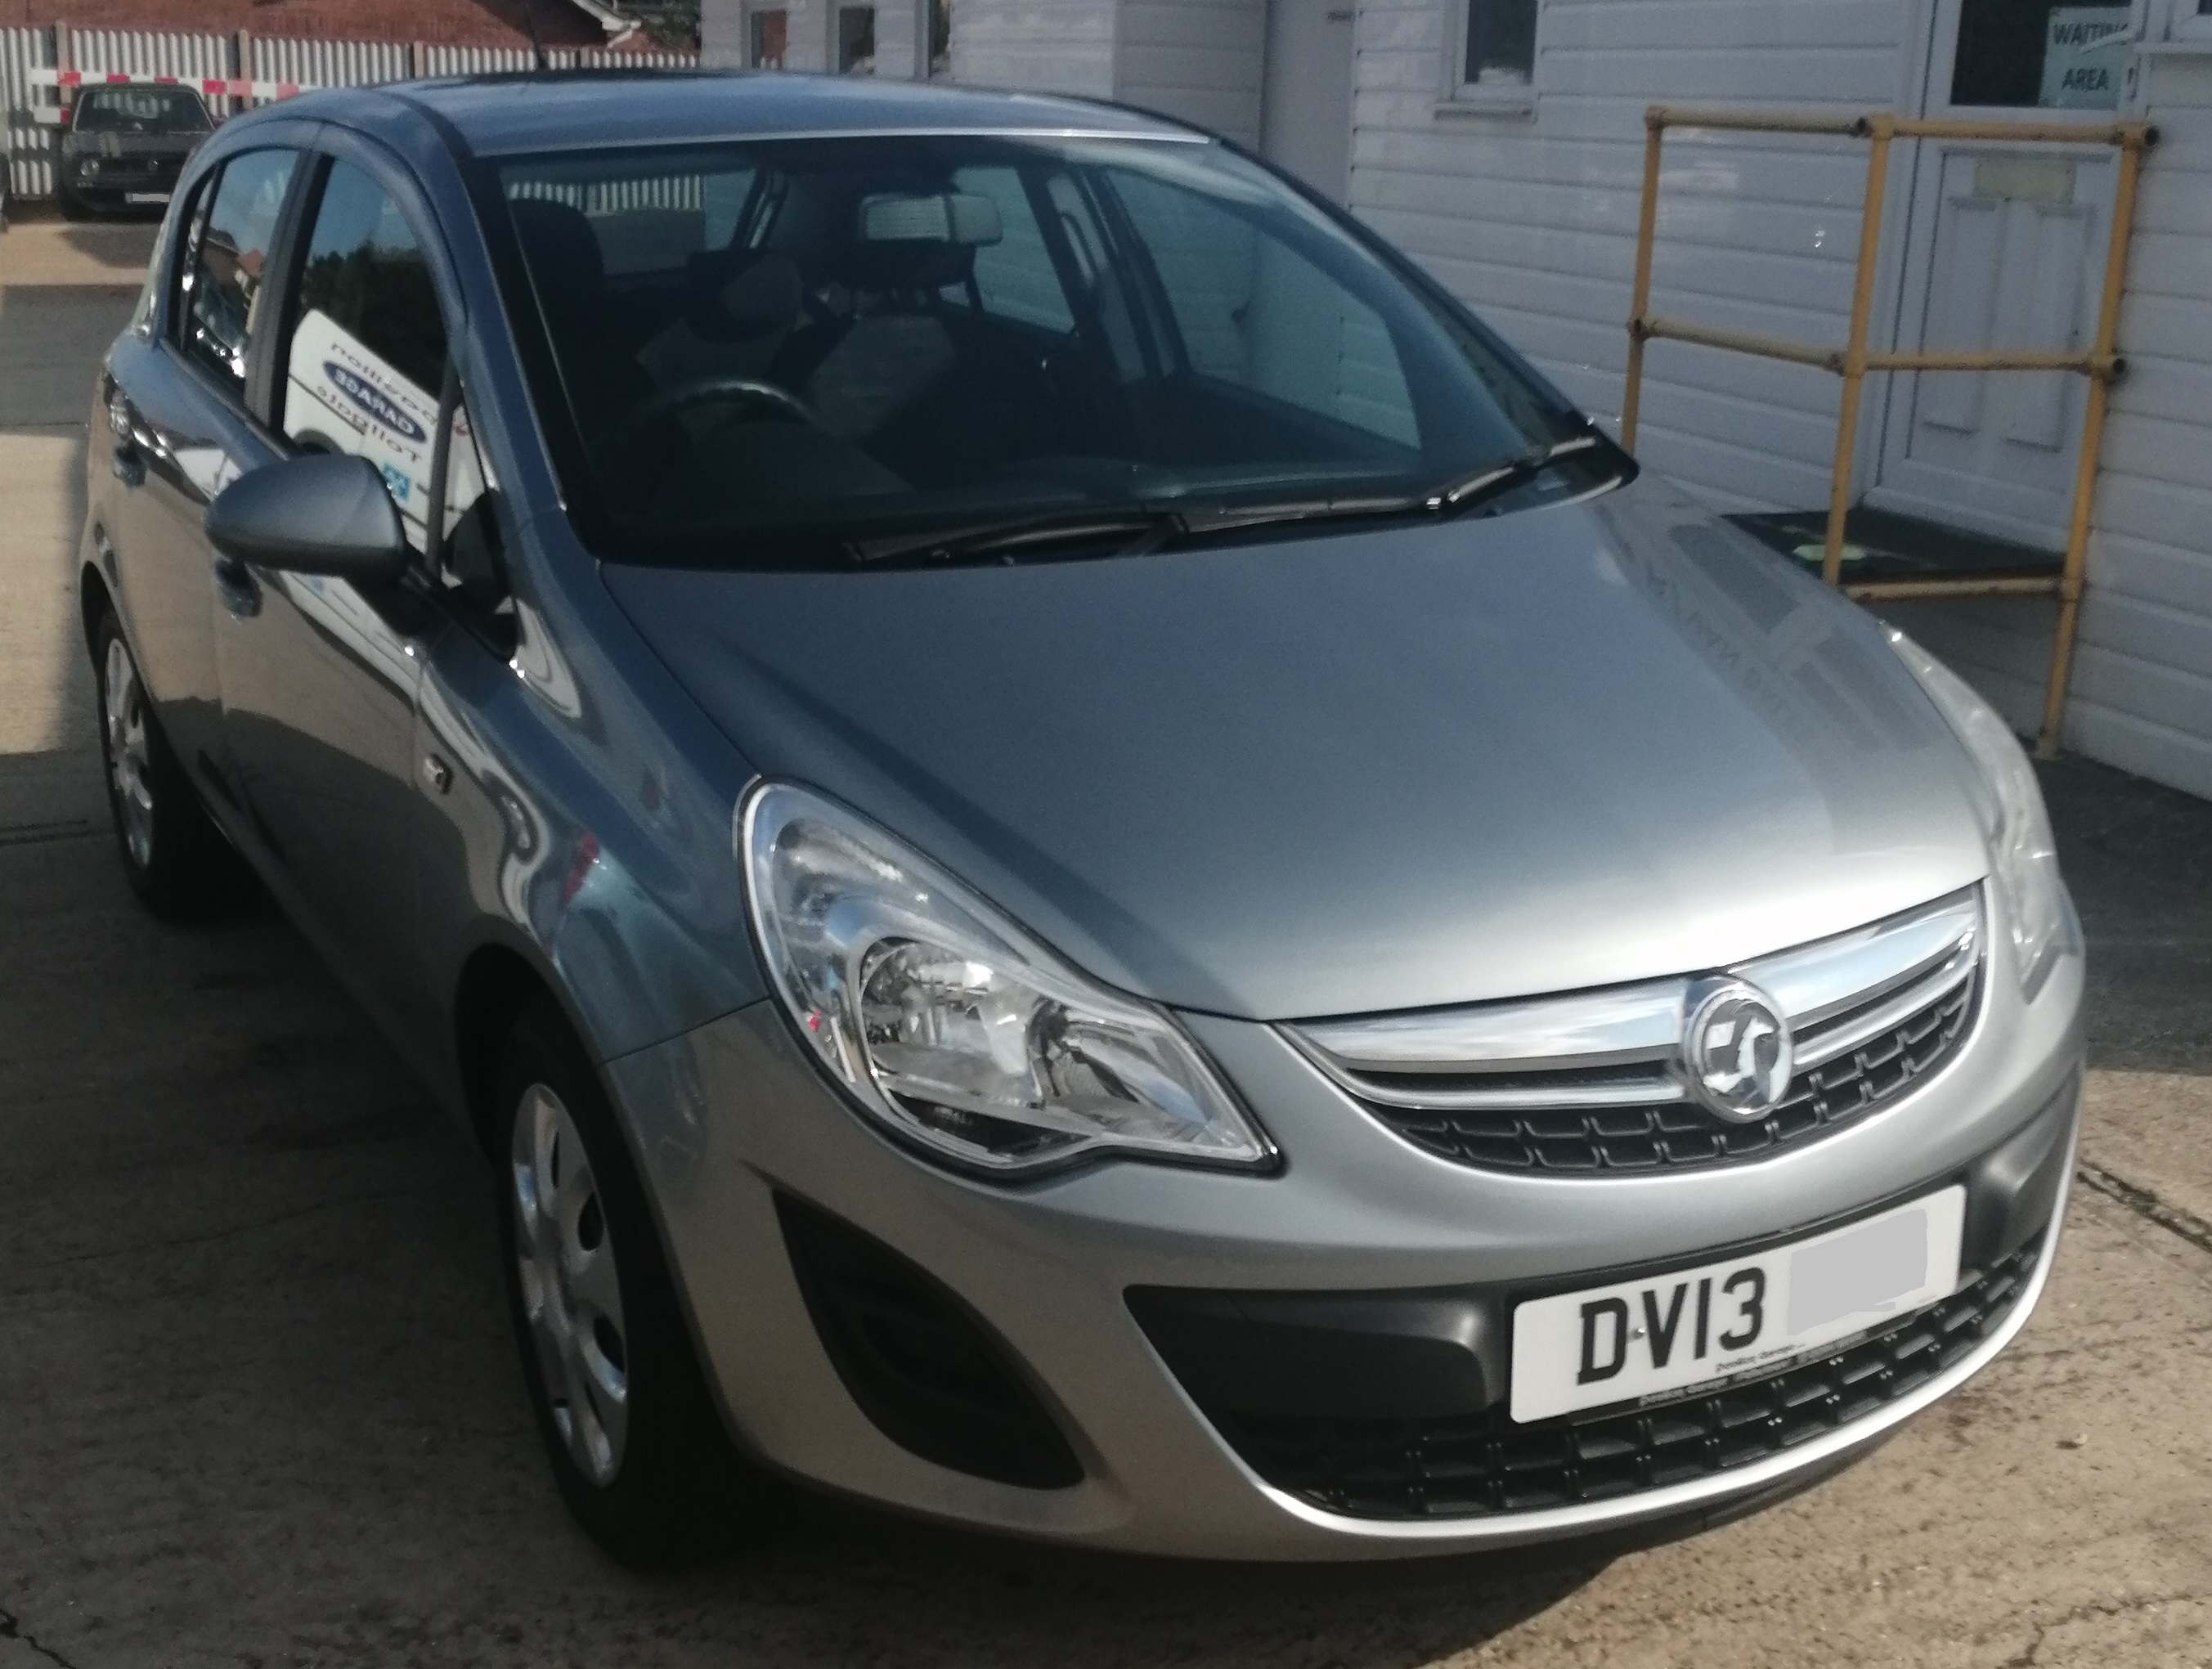 Vauxhall Corsa Exclusive 1229cc - Petrol 2013 / 13 *** ONLY 20210 Miles *** Service History Spare Key £130 per year Road Tax £4695  E10 Fuel Compliant